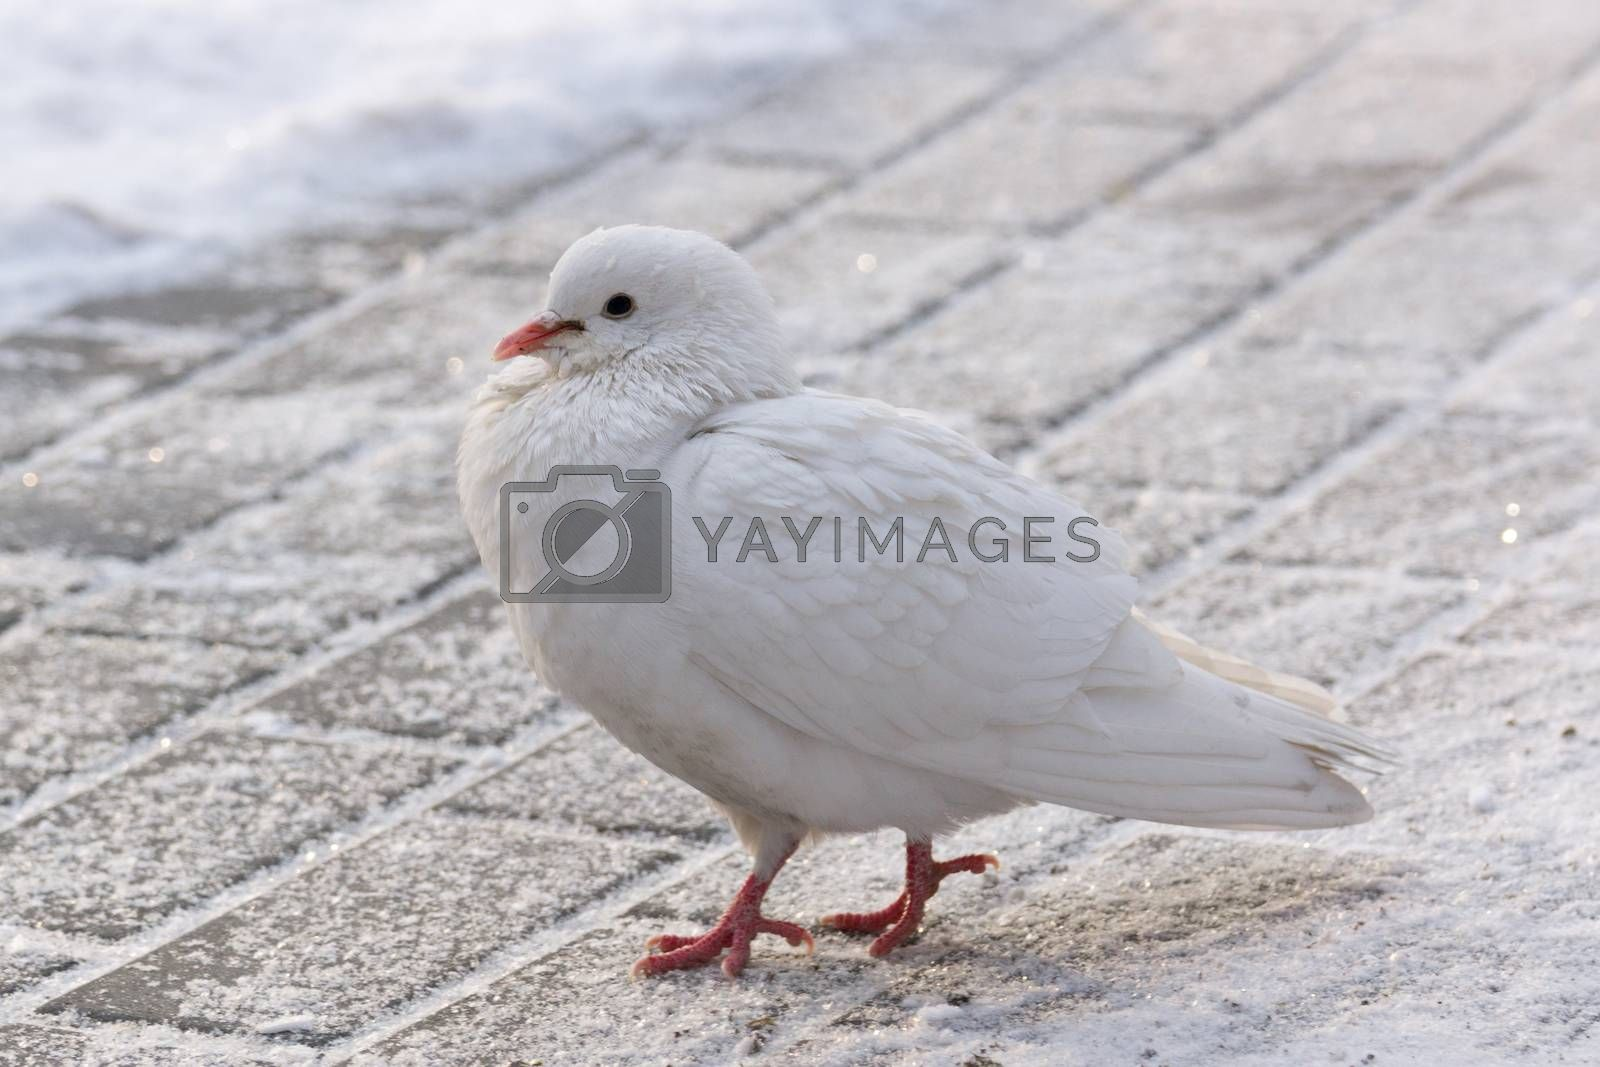 The photo depicts a white dove on the road